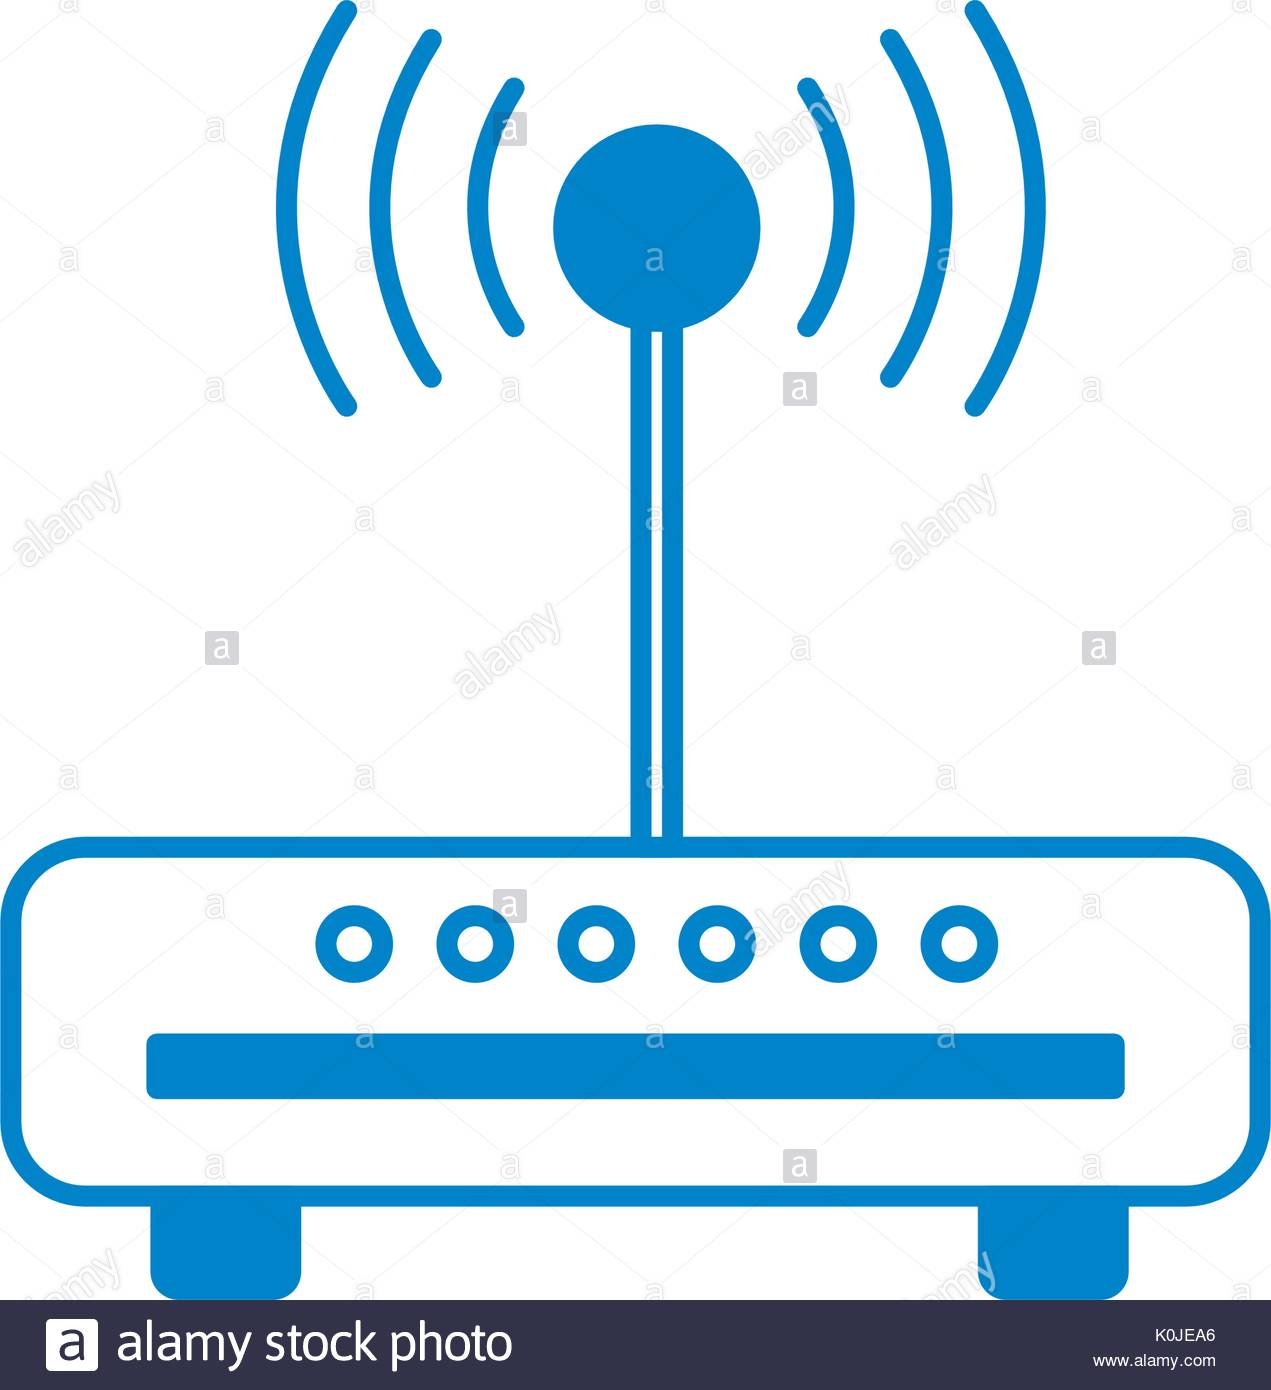 1271x1390 Silhouette Router Wifi Connection Network Technology Stock Vector